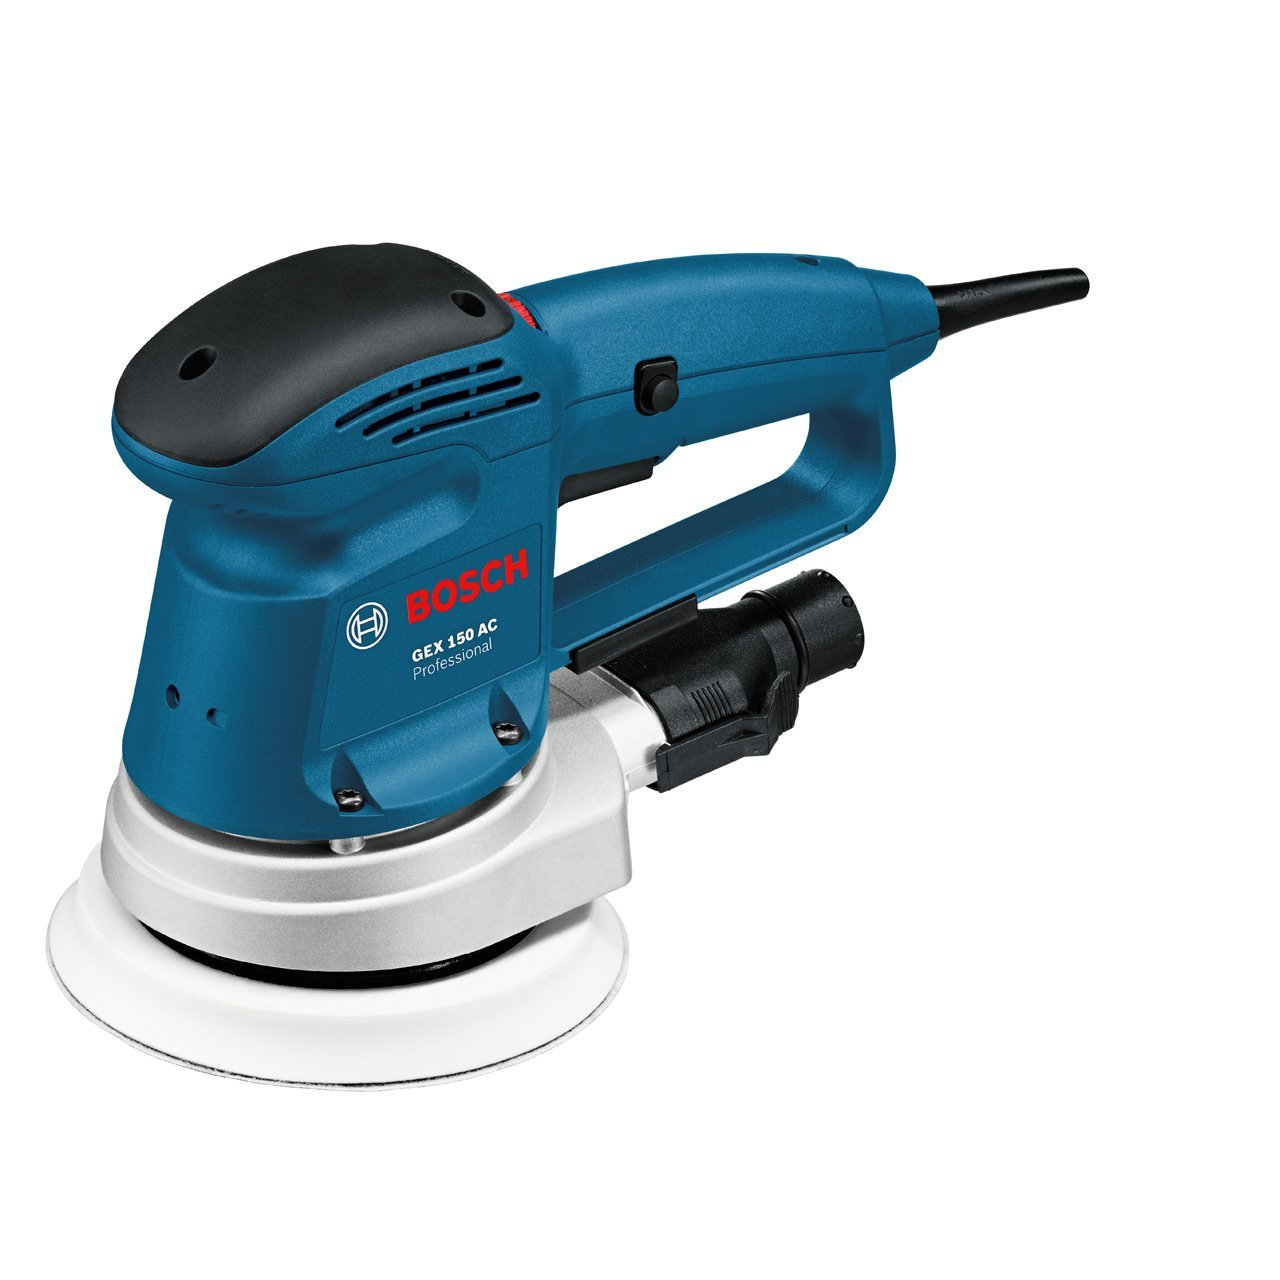 Bosch Professional 0601372768 Ponceuse excentrique GEX 150 AC 340 W